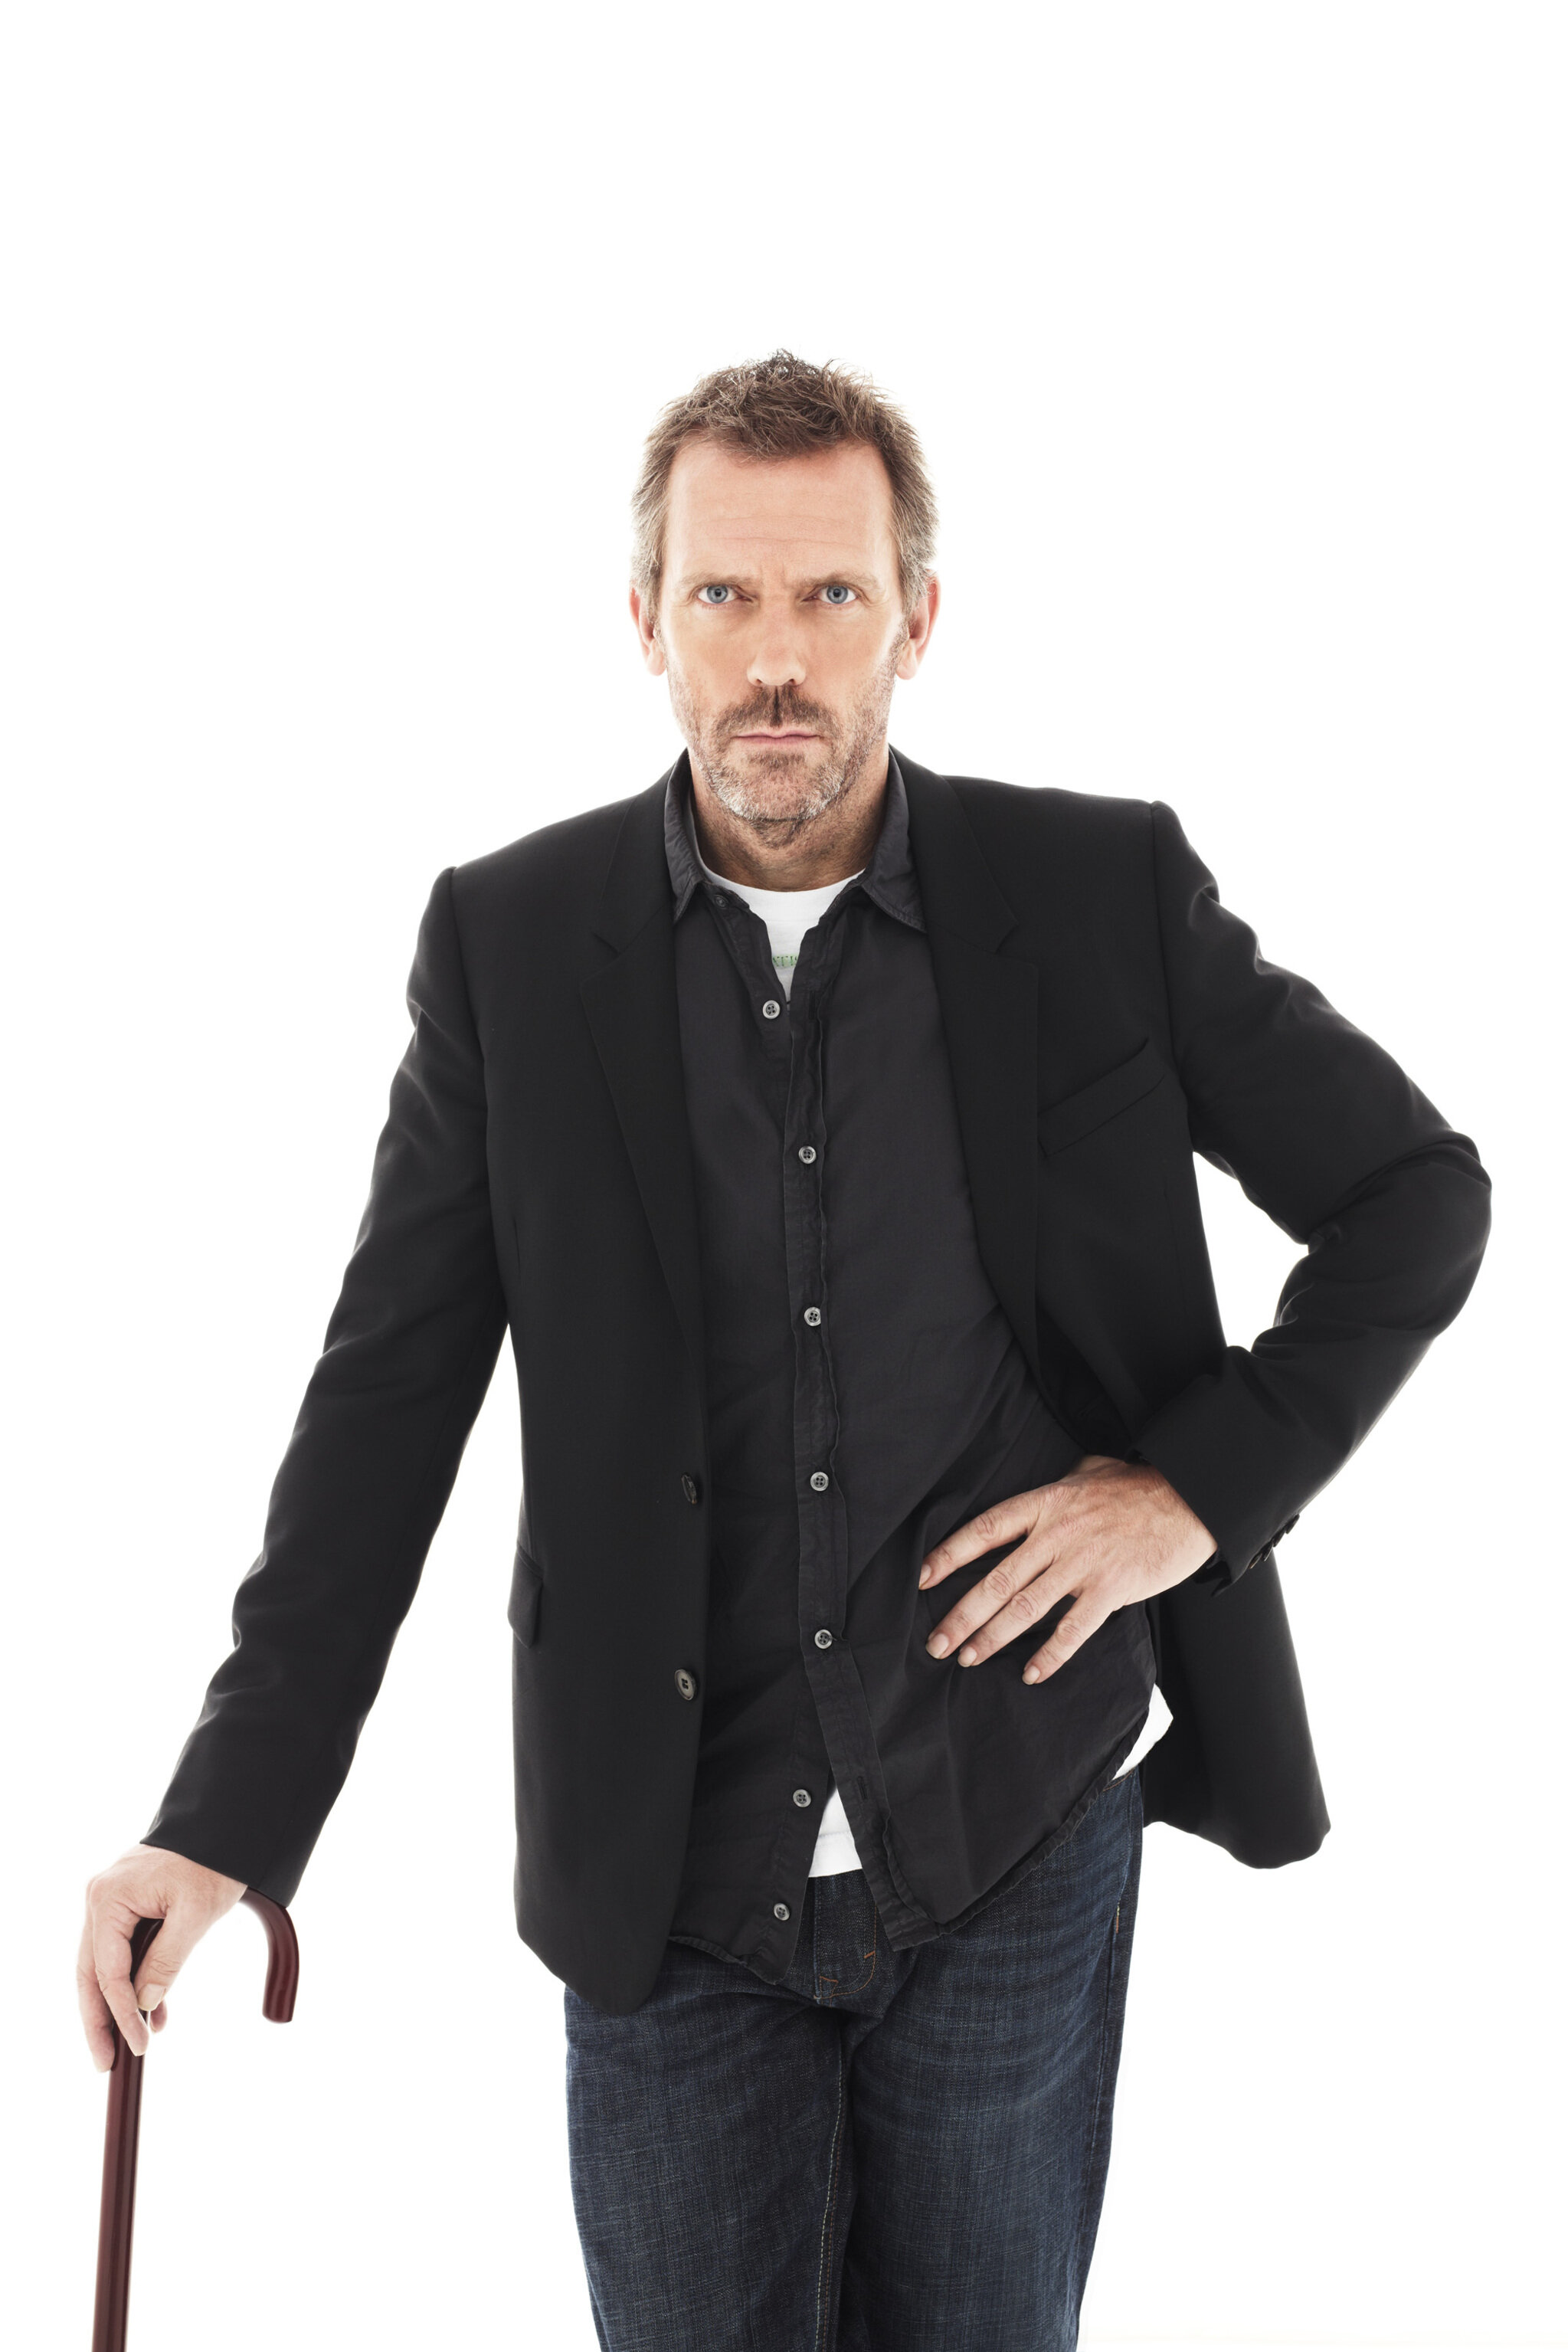 Dr House - Double discours